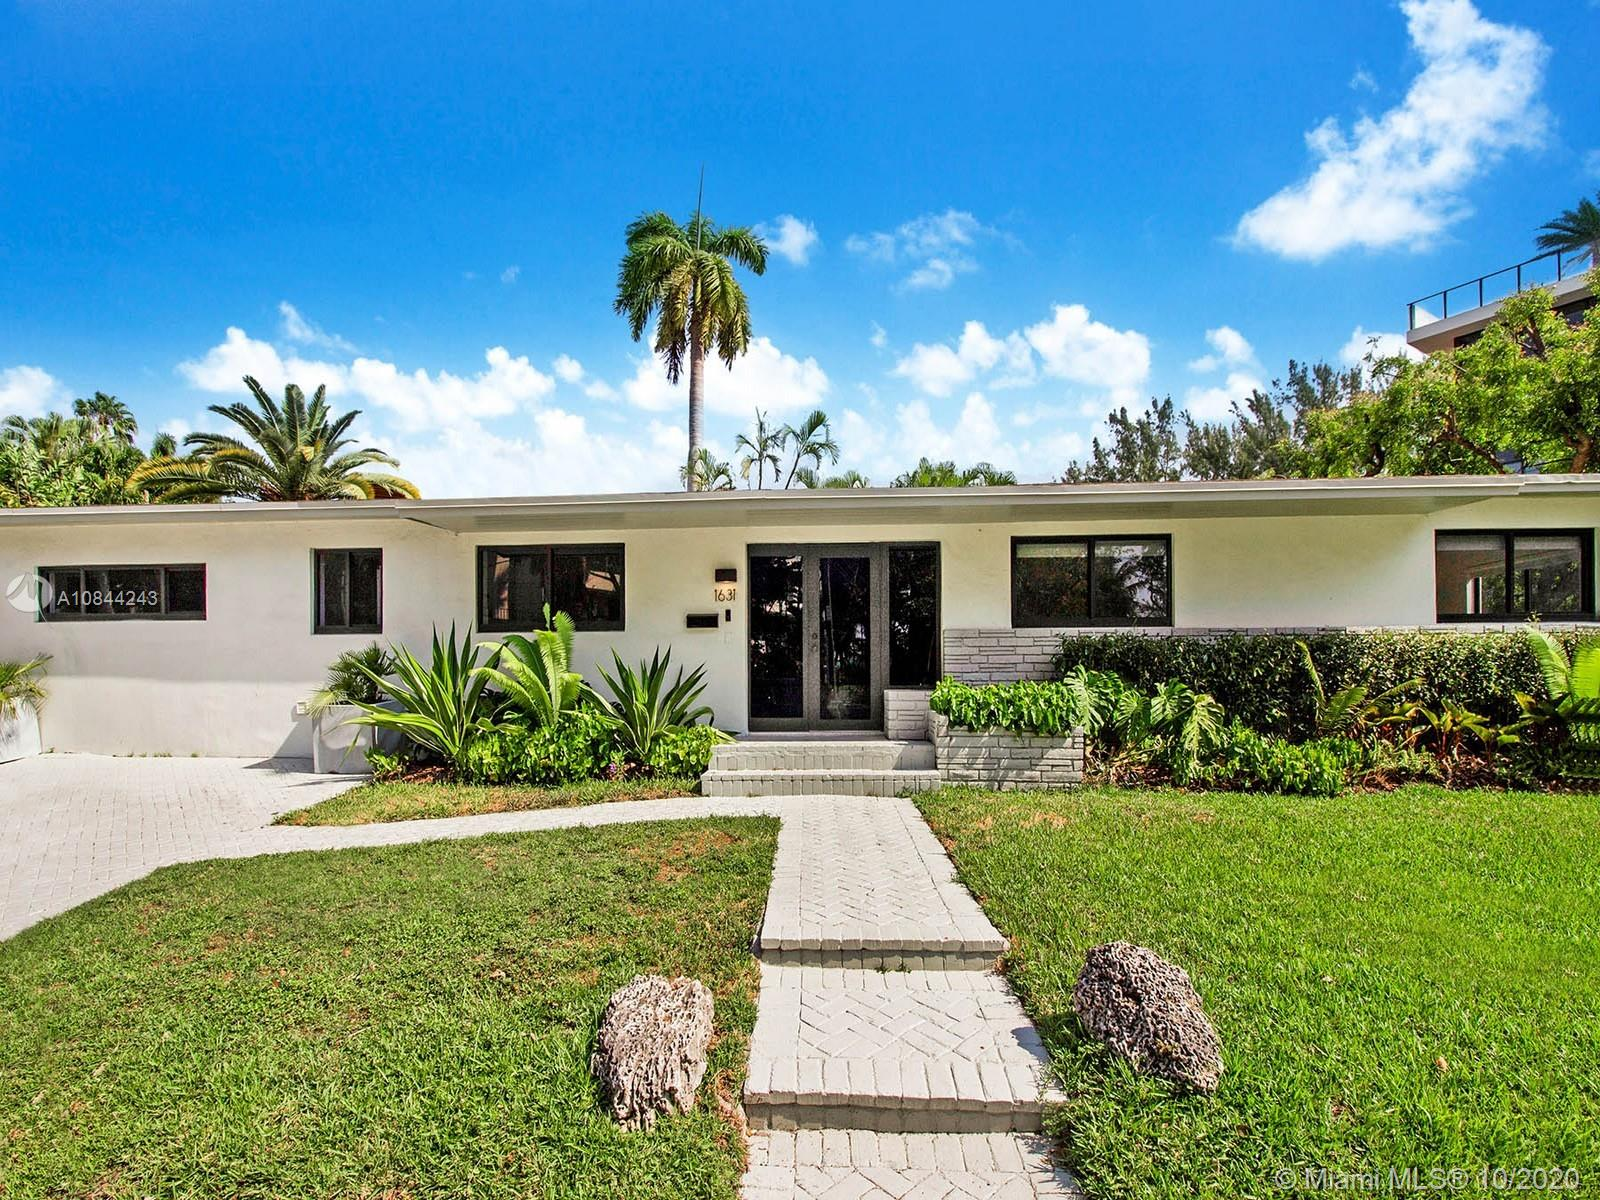 1631 S Bayshore Court, Coconut Grove, Florida 33133, 3 Bedrooms Bedrooms, ,2 BathroomsBathrooms,Residential,For Sale,1631 S Bayshore Court,A10844243